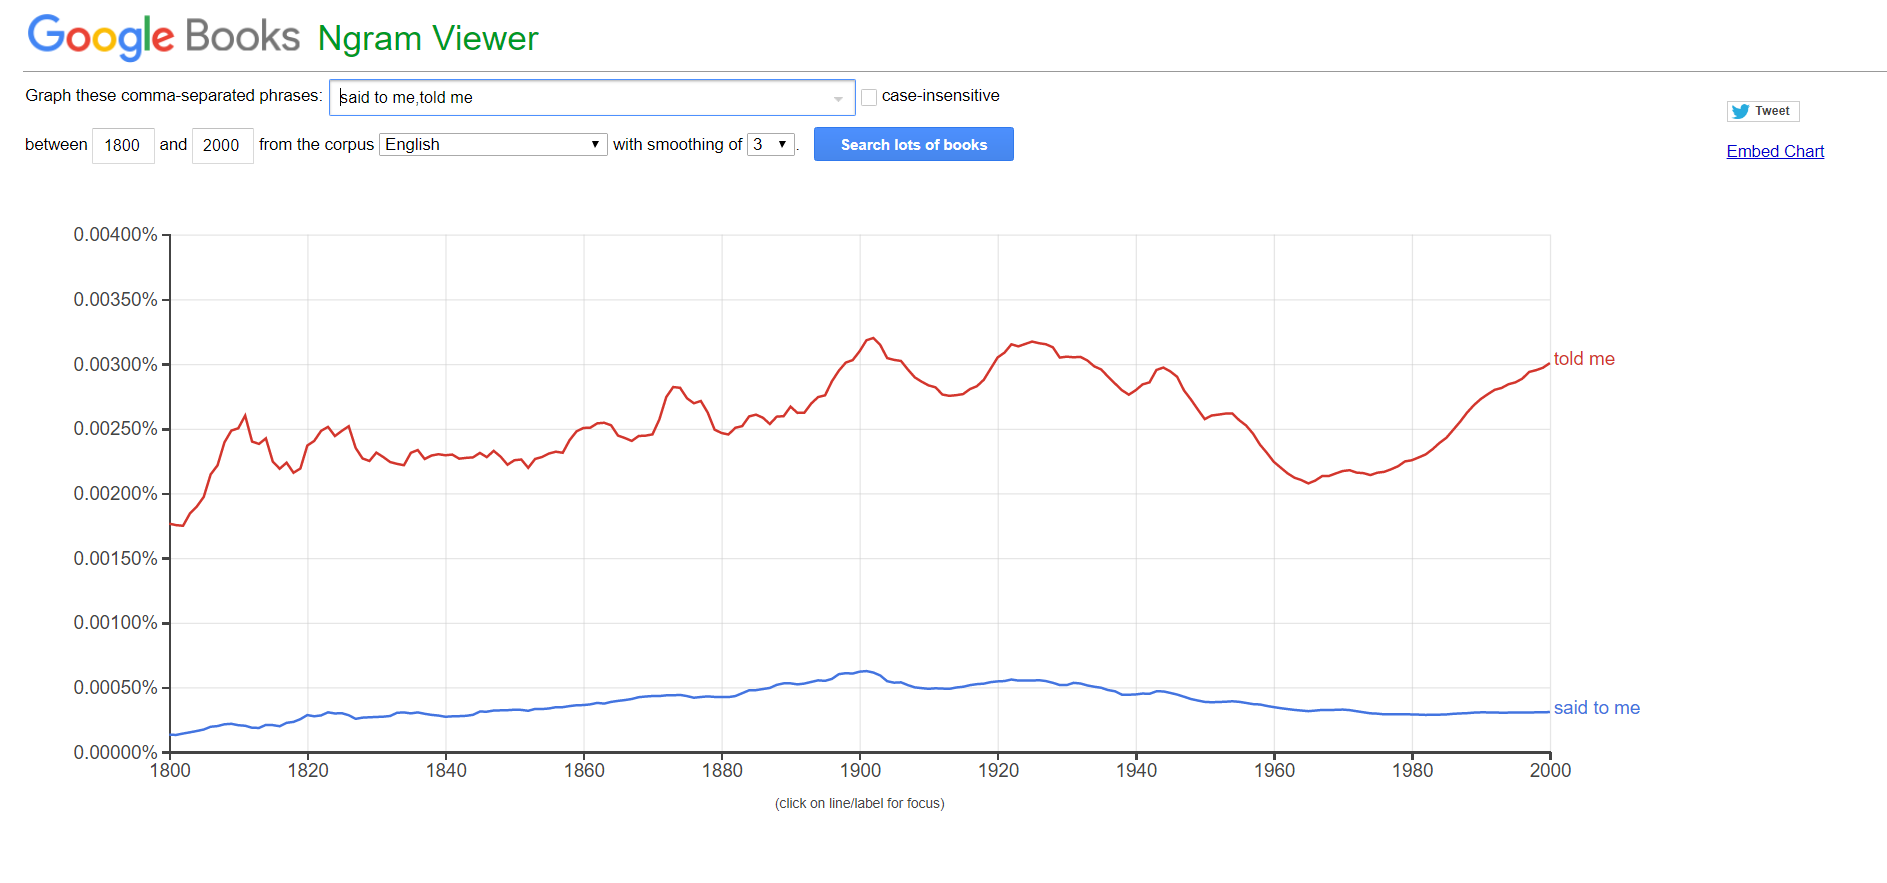 Ngram told me vs said to me